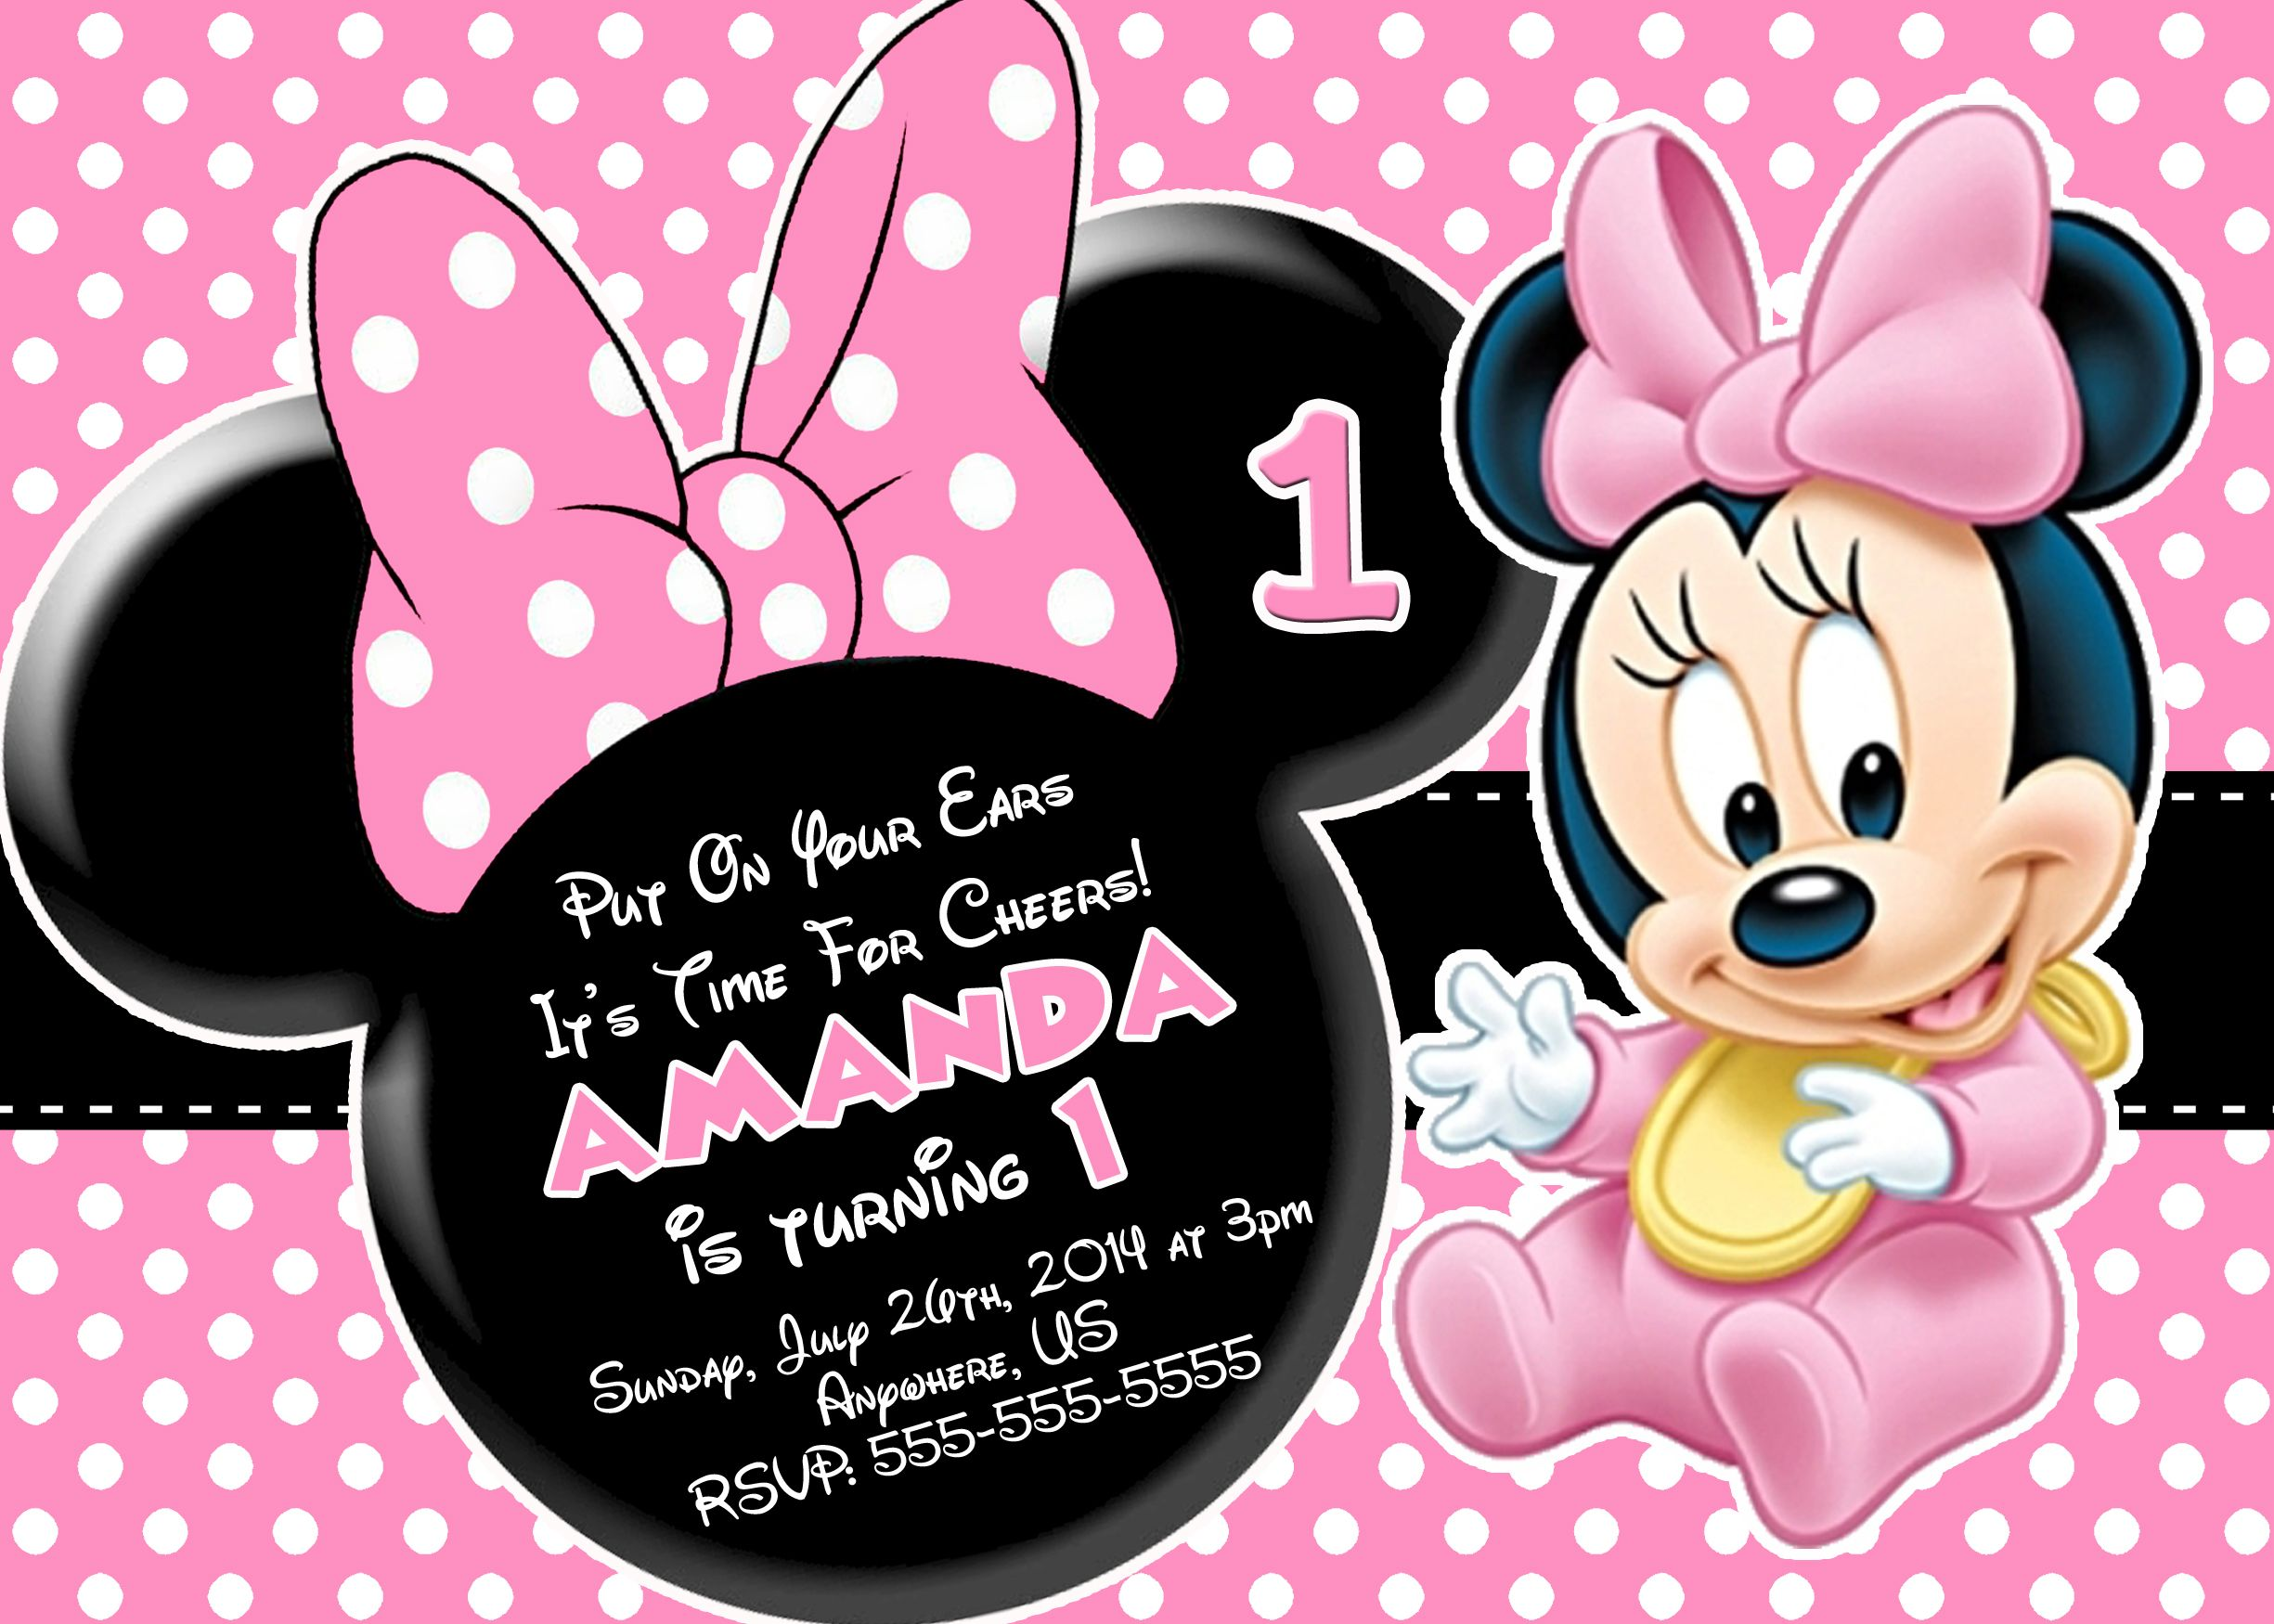 Disney Baby Minnie Mouse 1st Birthday Invitations 899 Available At Partyexpressinvitations